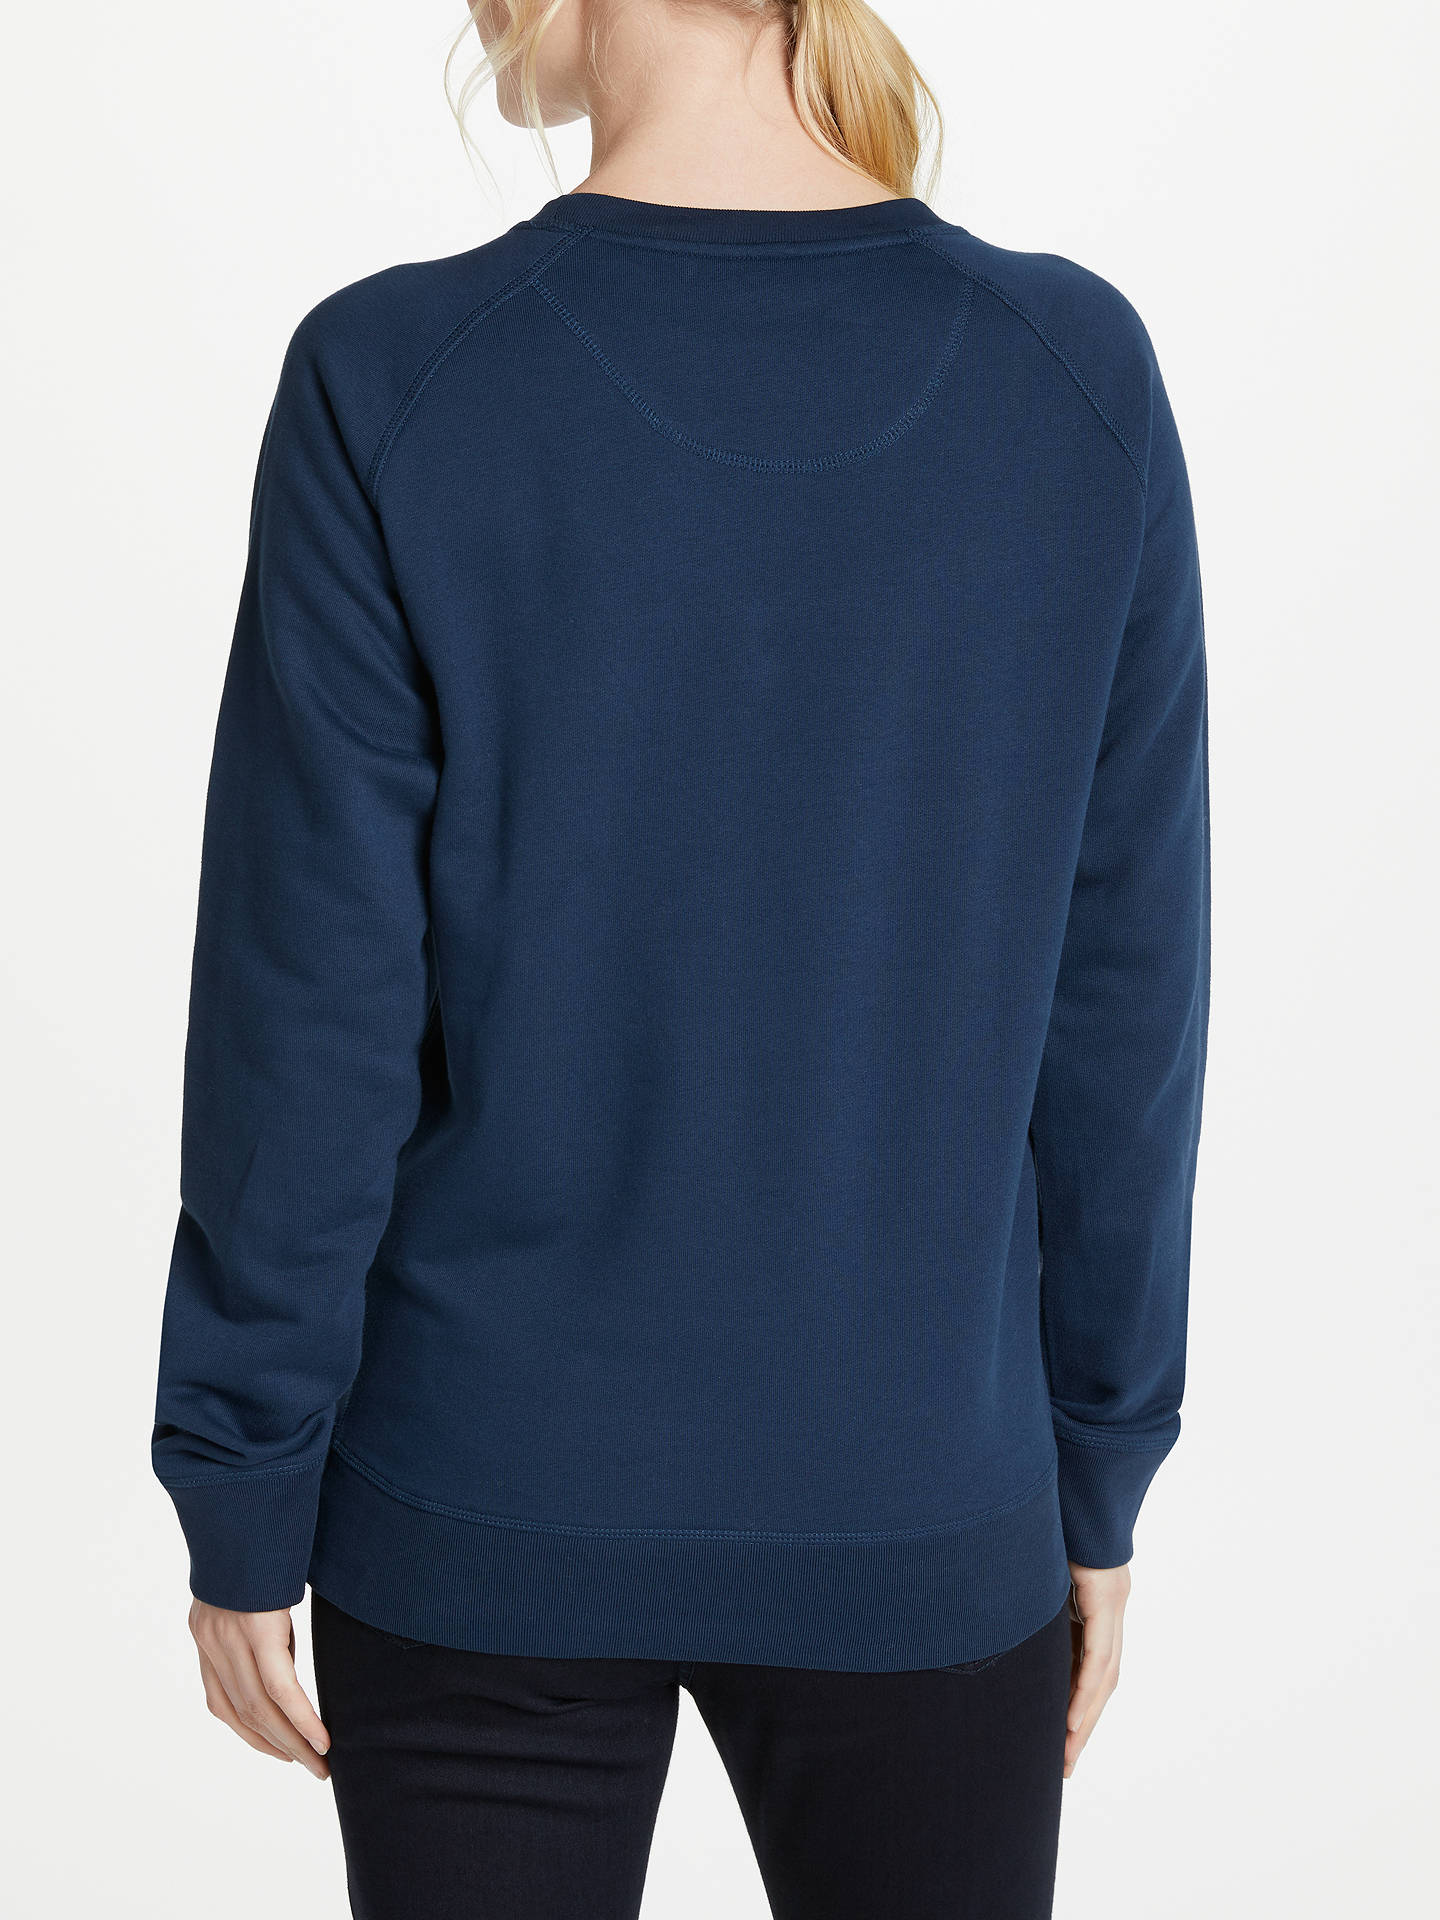 Buy Selfish Mother Winging It Crew Neck Sweatshirt, Navy/Silver, S Online at johnlewis.com